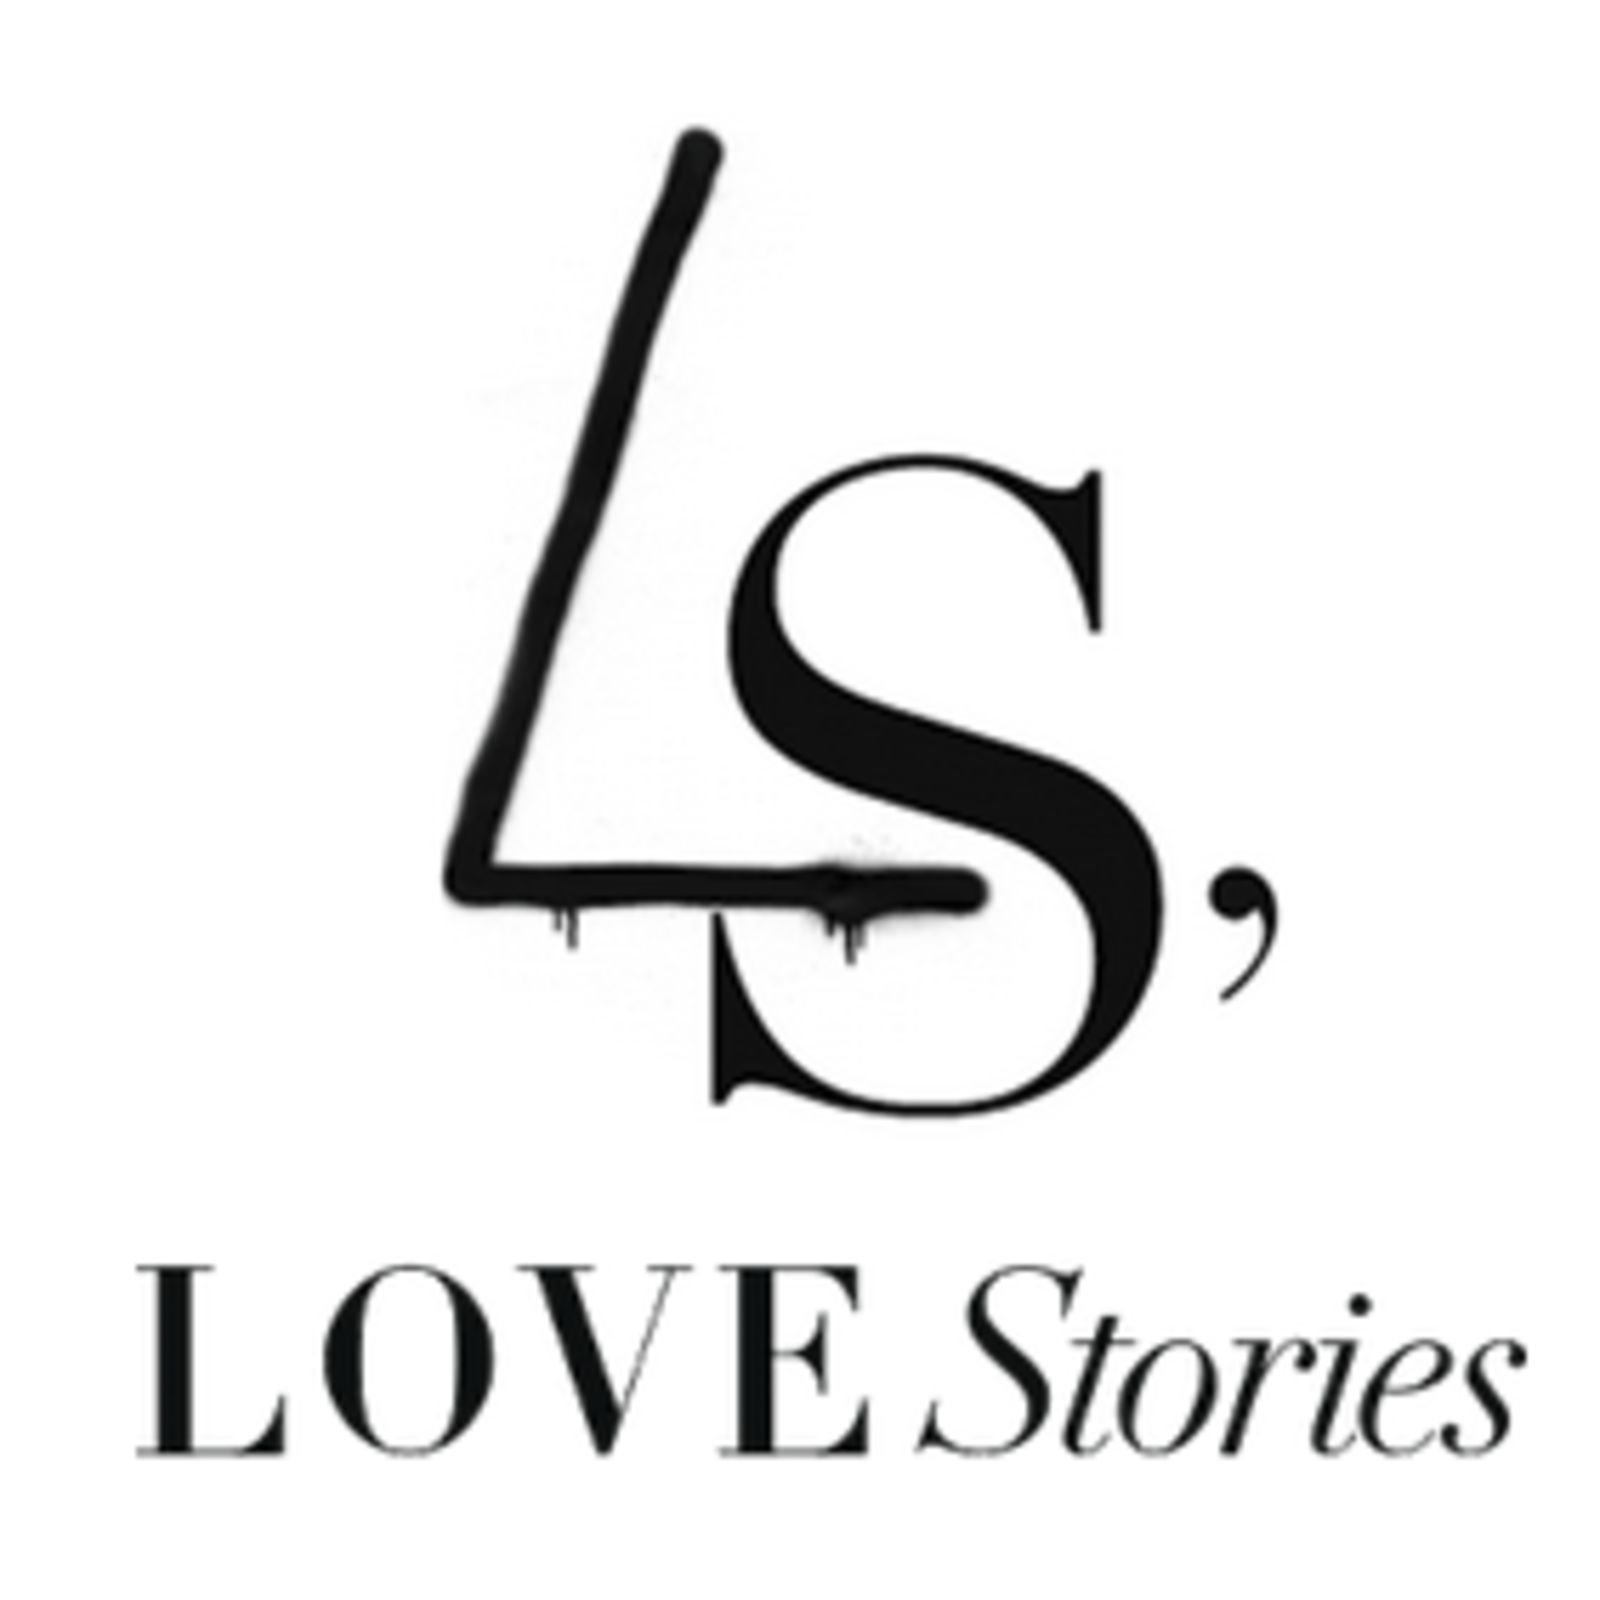 Love Stories (Image 1)